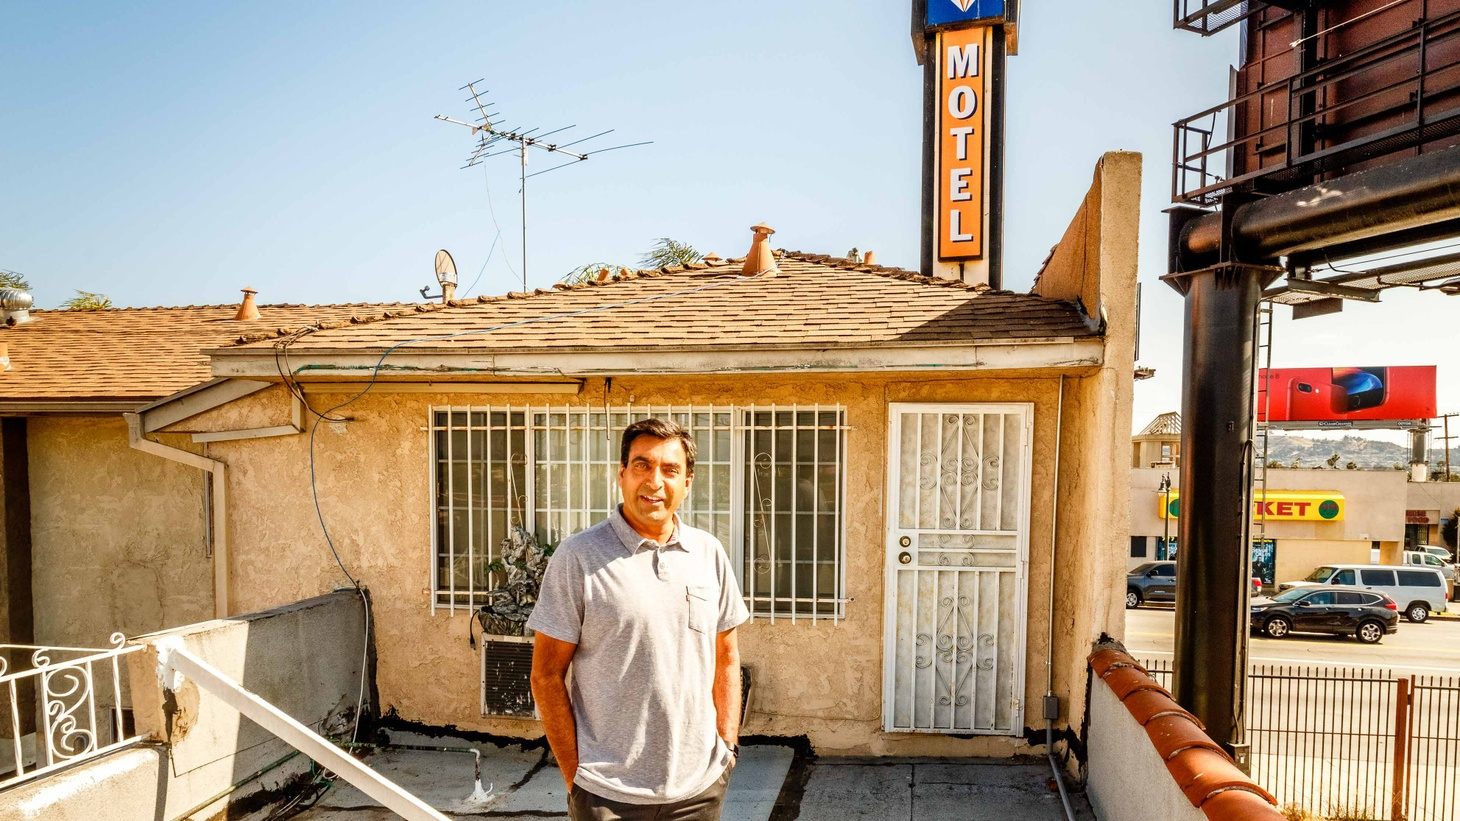 We meet some motel owners who are turning their properties over for use as homeless shelters, and others who aren't so sure that's a good idea.